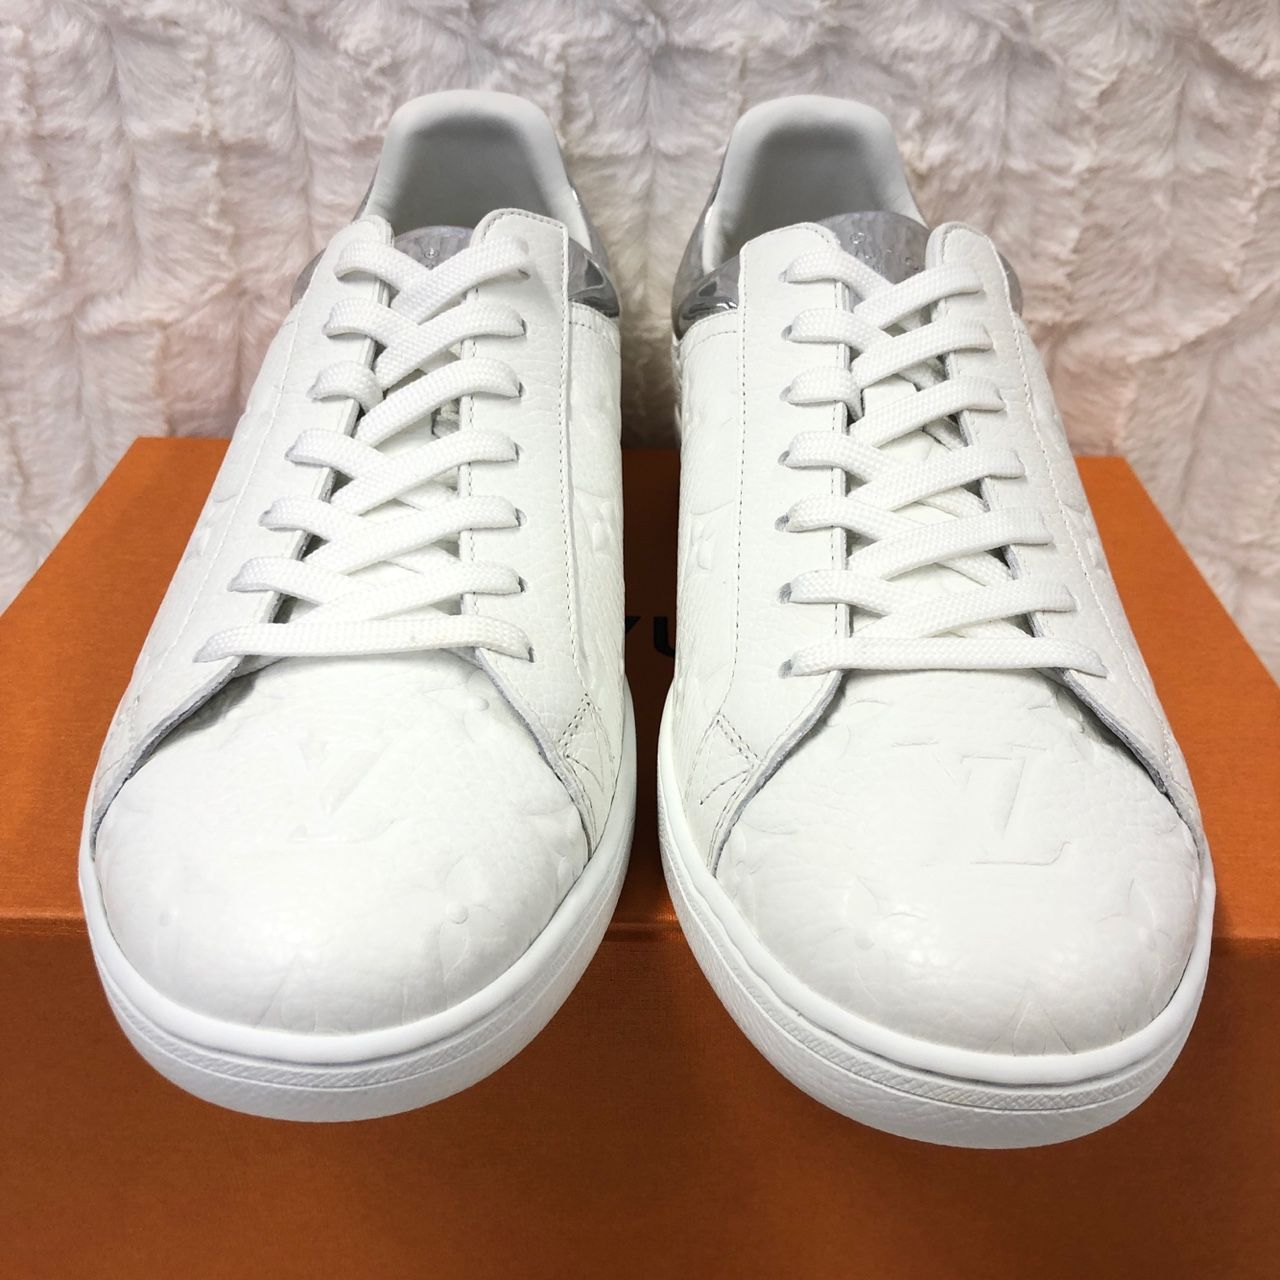 Louis Vuitton Luxembourg Sneaker Argent 1A80XH